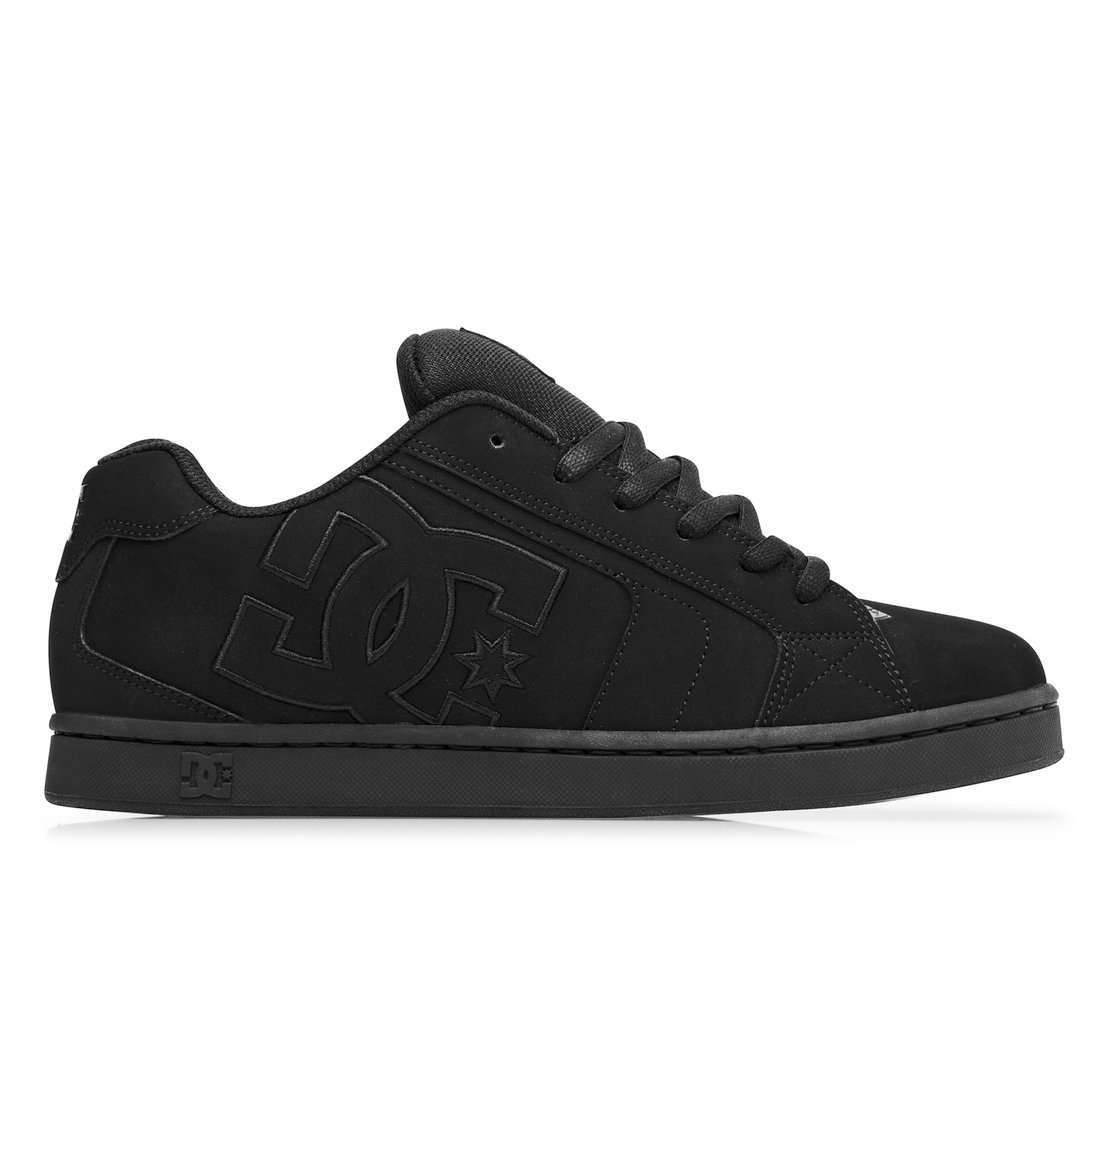 Baratos Extremadamente Compra Venta dc shoes Player SE - Scarpe da Uomo - Black - DC Shoes Venta Barata Encontrar Gran kdKnwk0fh